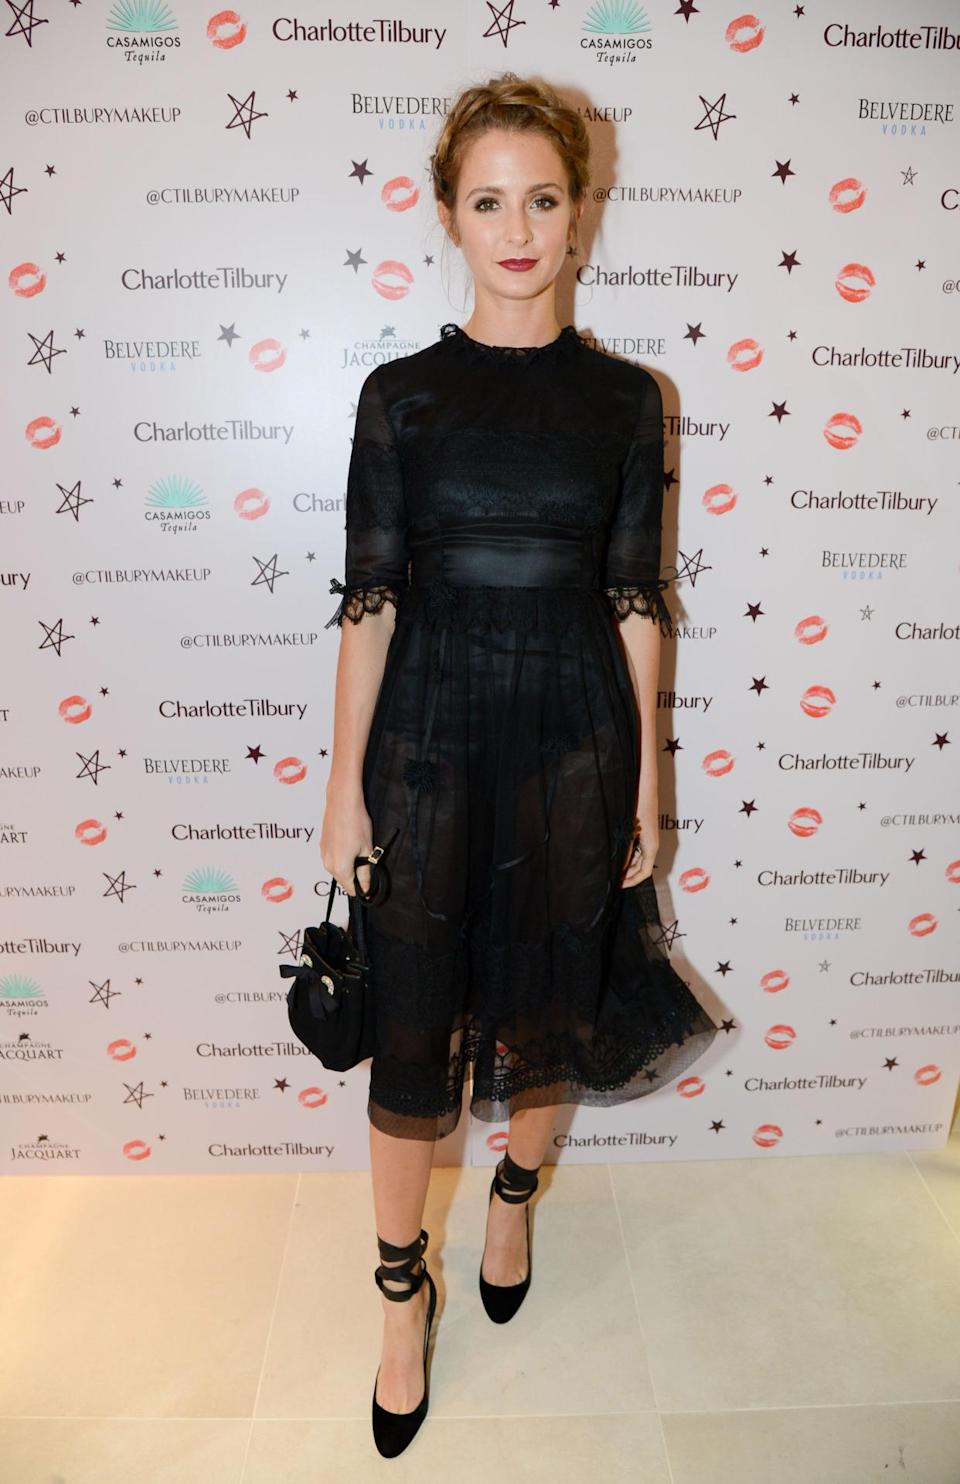 Millie Mackintosh flaunted her sartorial prowess in a chic Shiatzy Chen dress, featuring a sheer skirt that showed off the black satin bodysuit she was wearing underneath. She paired the look with Jimmy Choo heels and an L.K. Bennett bag. [Photo: Rex]